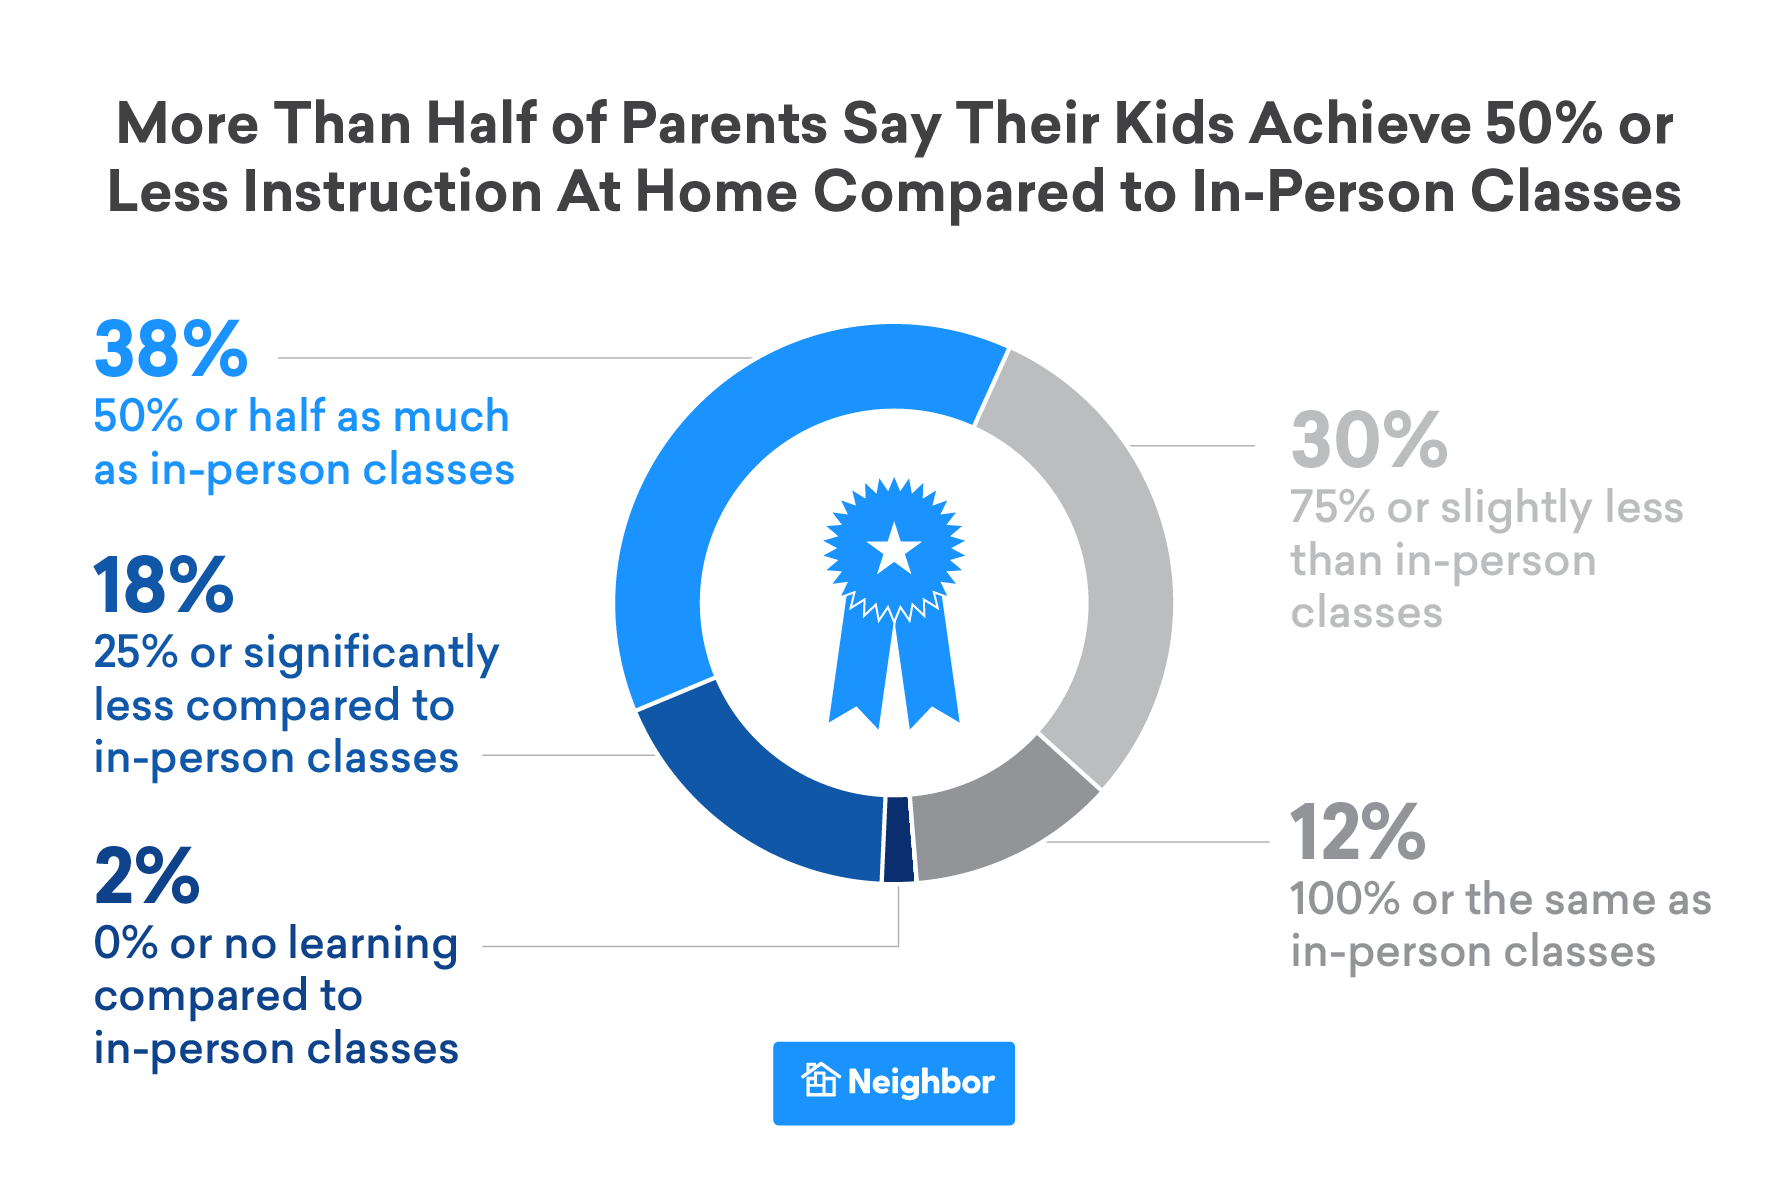 kids achieve 50 percent or less instruction, compared to in-person learning